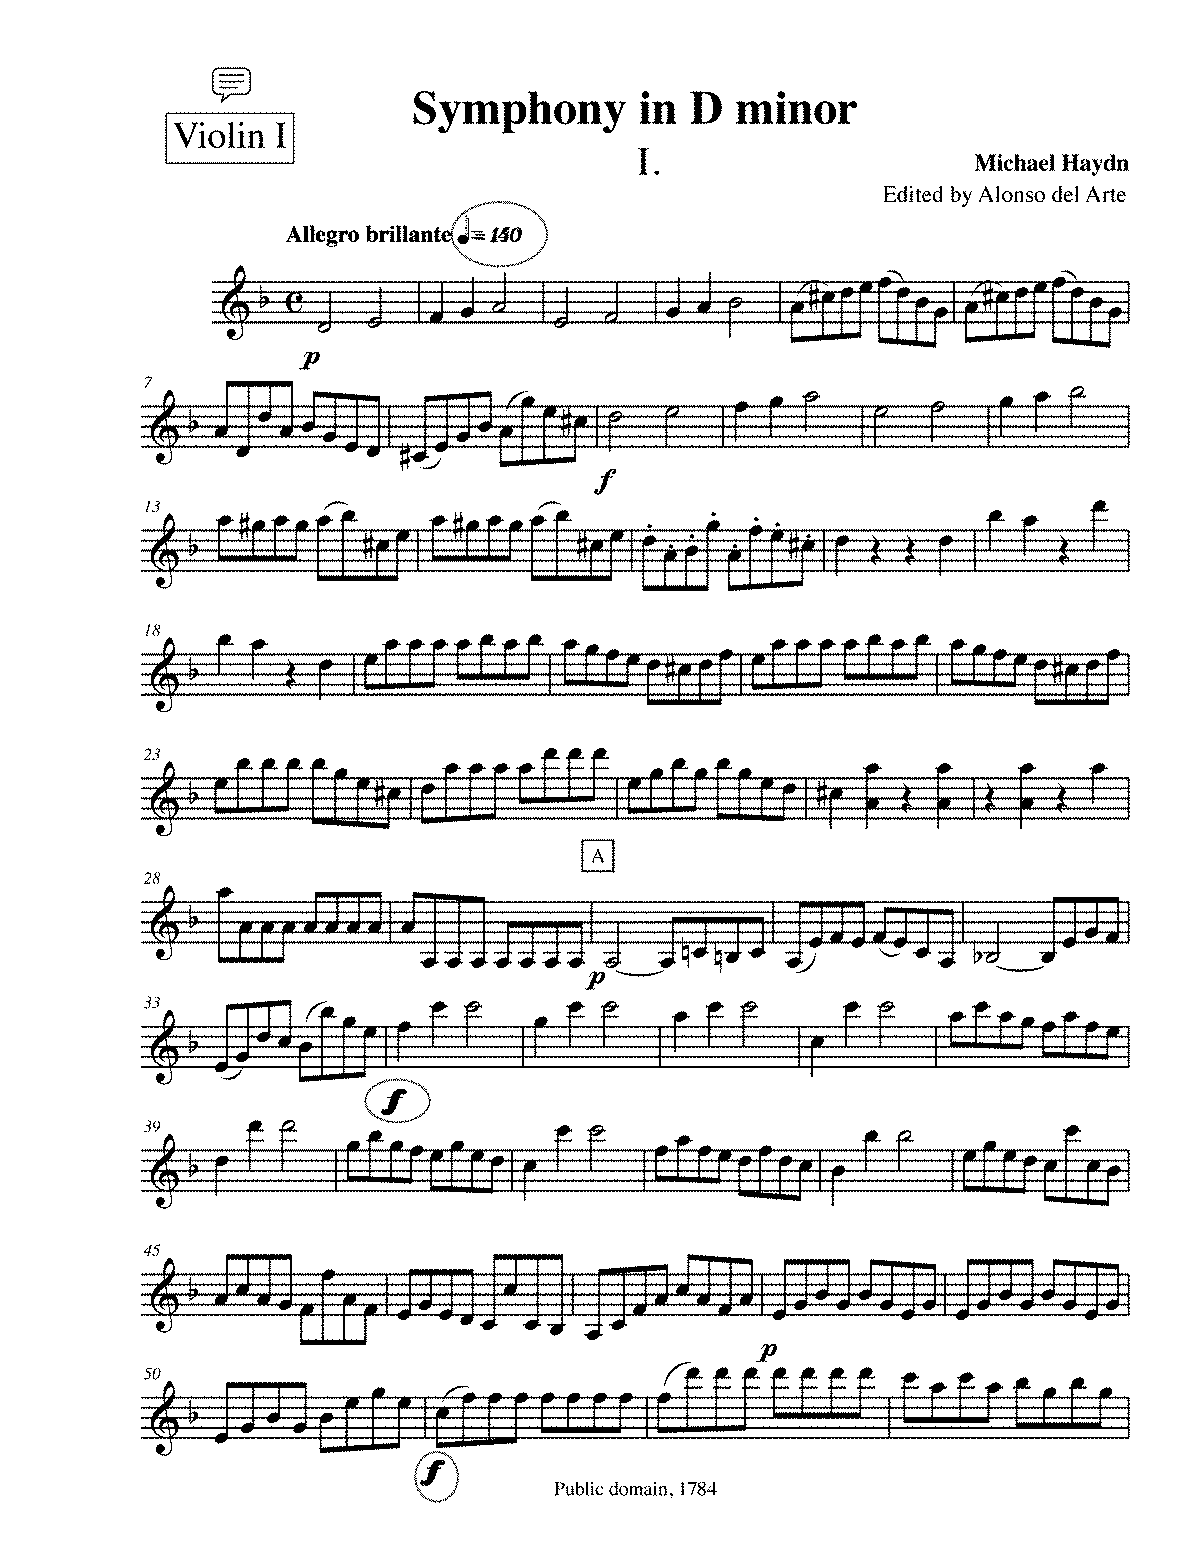 PMLP162195-HAYDN Symphony 30 or 29 in d minor all string PARTS.pdf